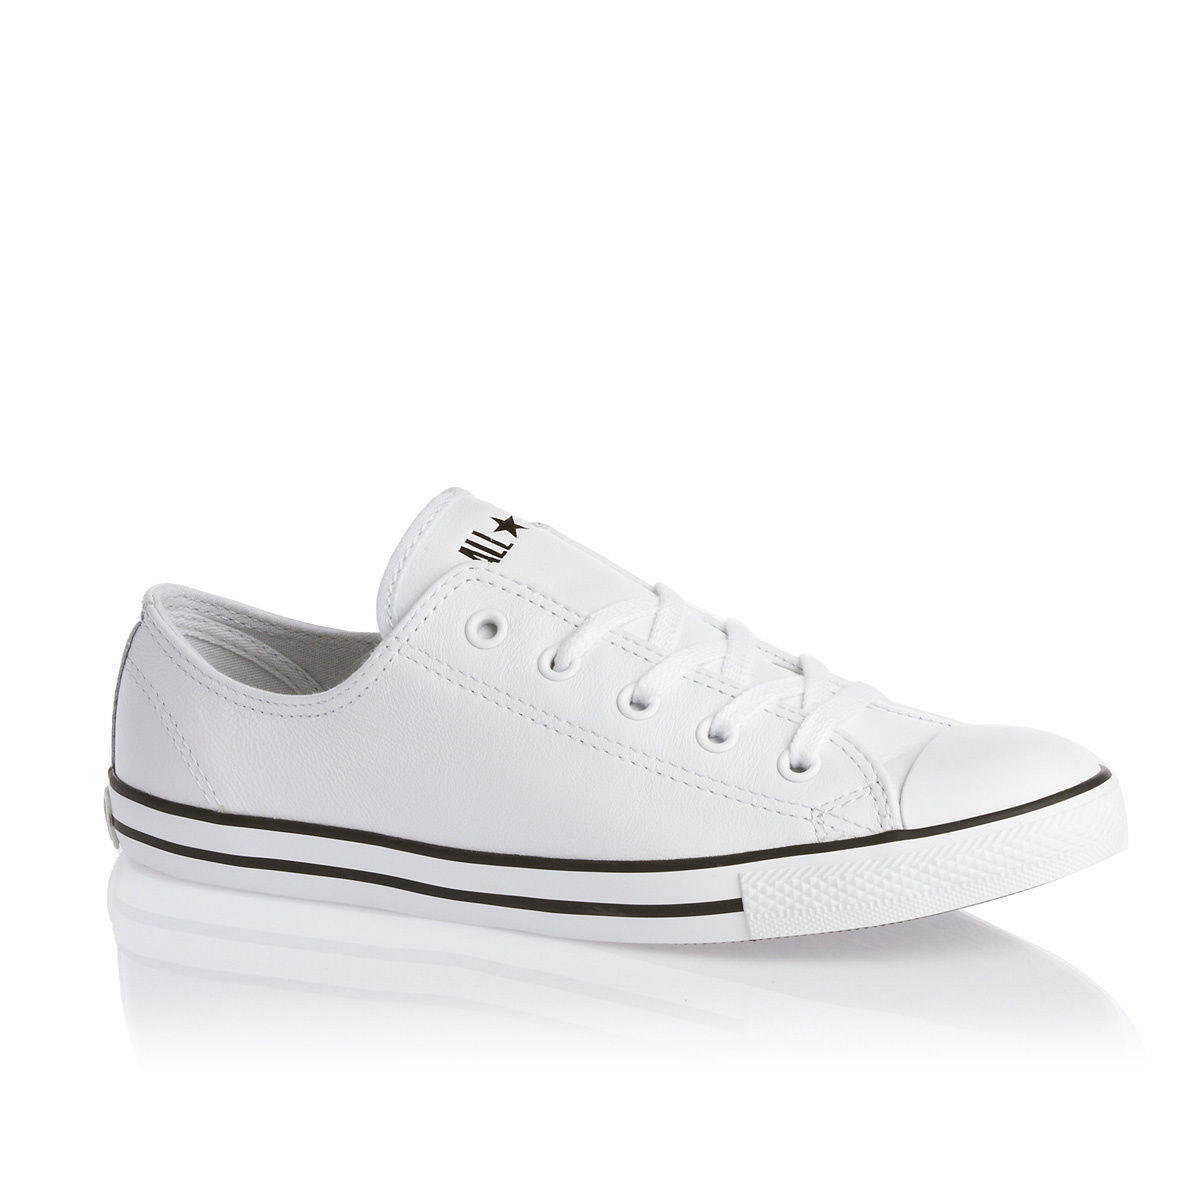 adf73fdb447 Converse Chuck Taylor All Star Dainty Ox Shoes - White